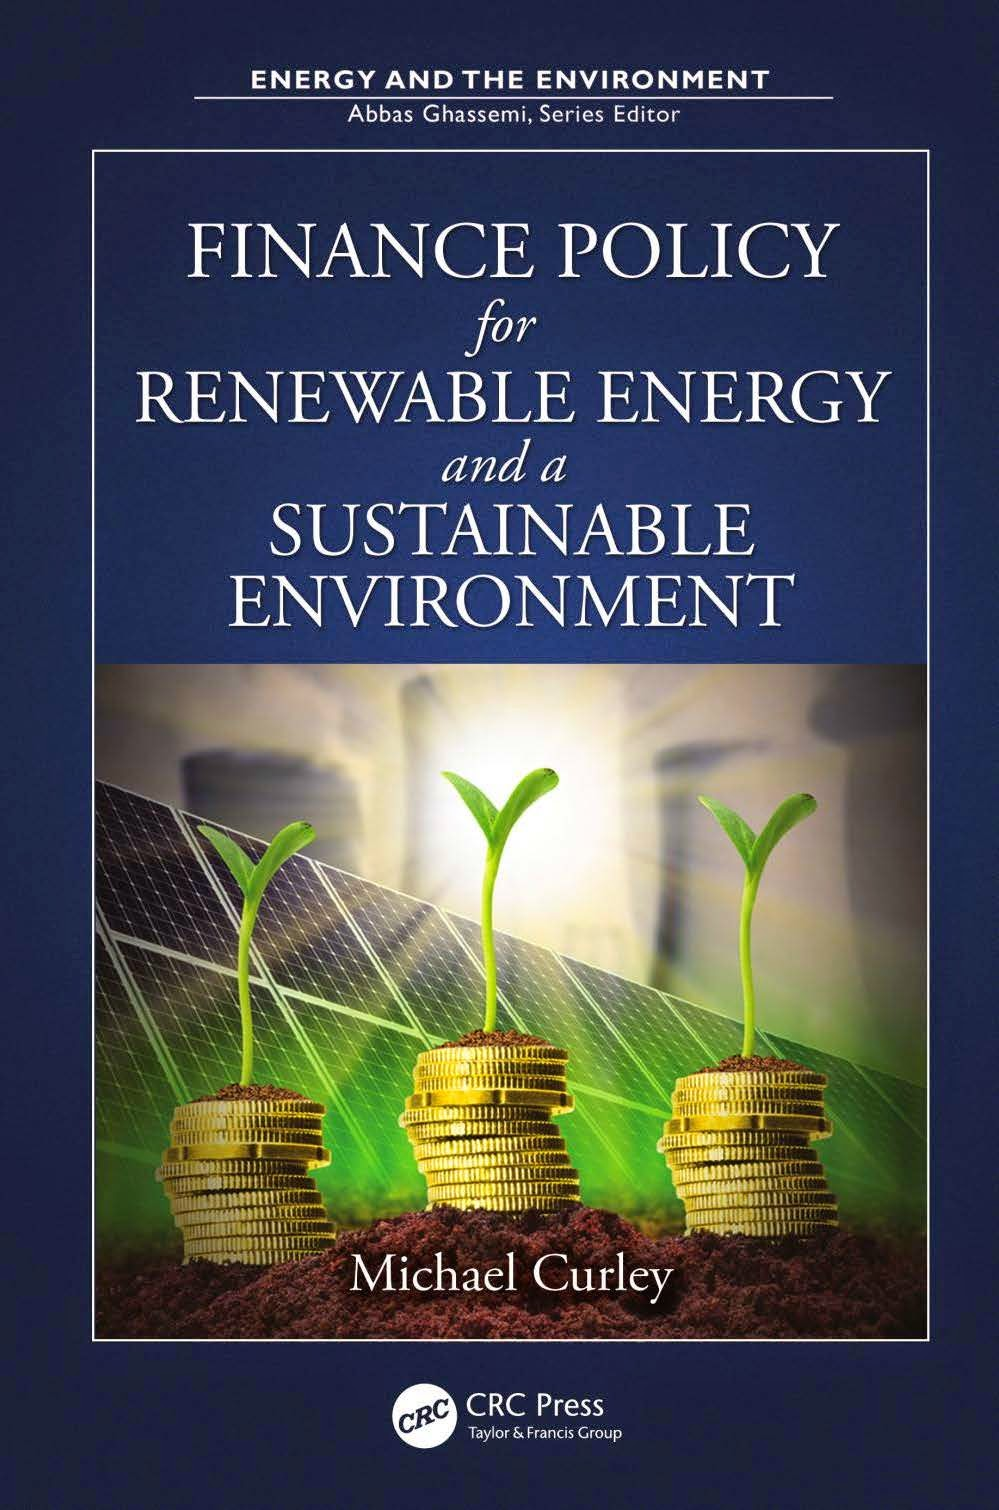 http://kingcheapebook.blogspot.com/2014/07/finance-policy-for-renewable-energy-and.html